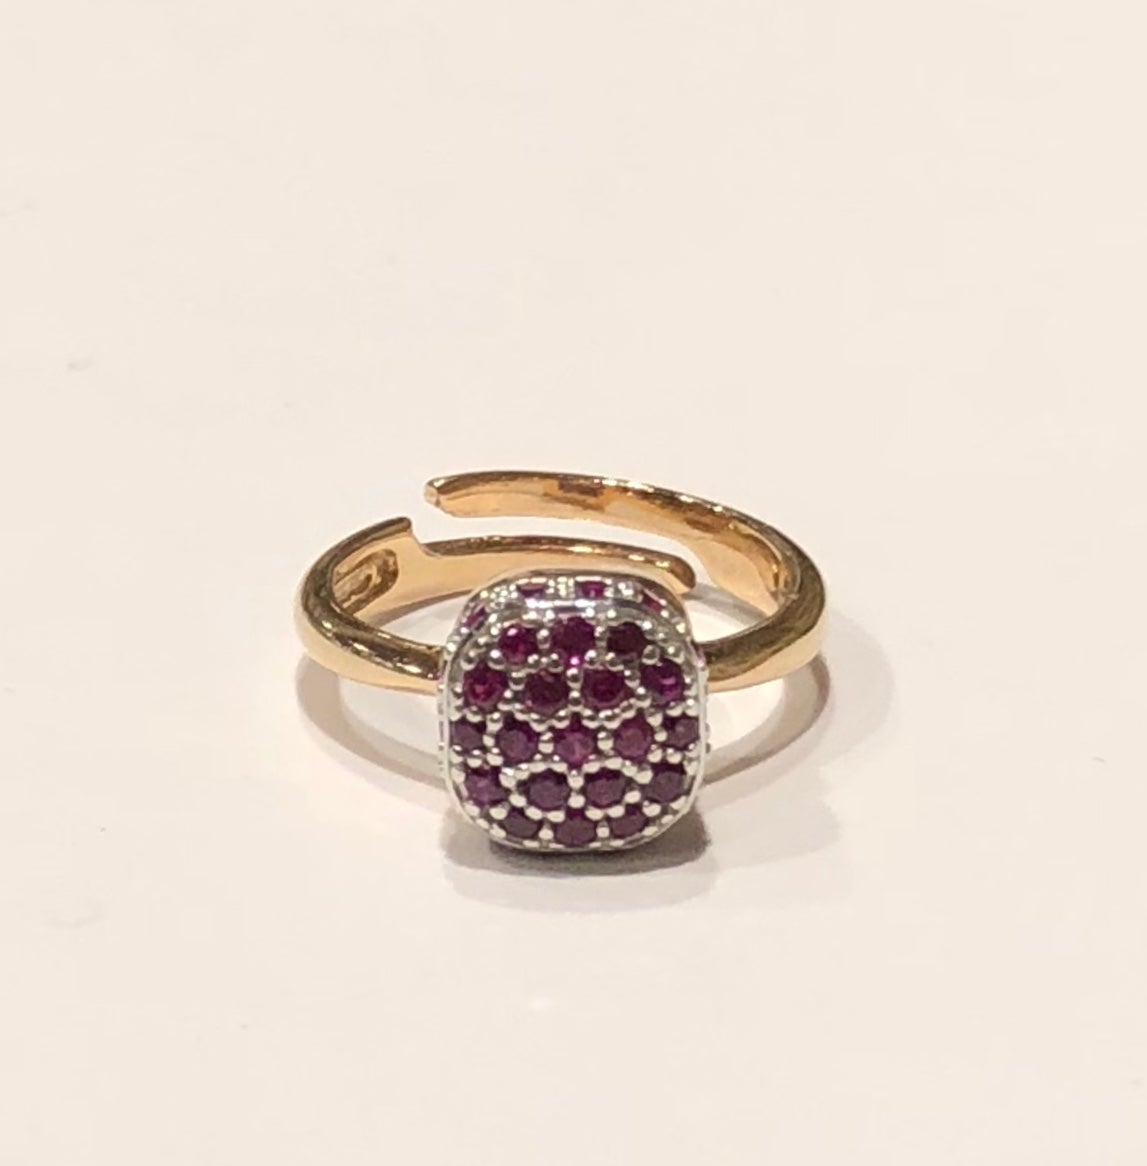 Image of 925 Silvia ring